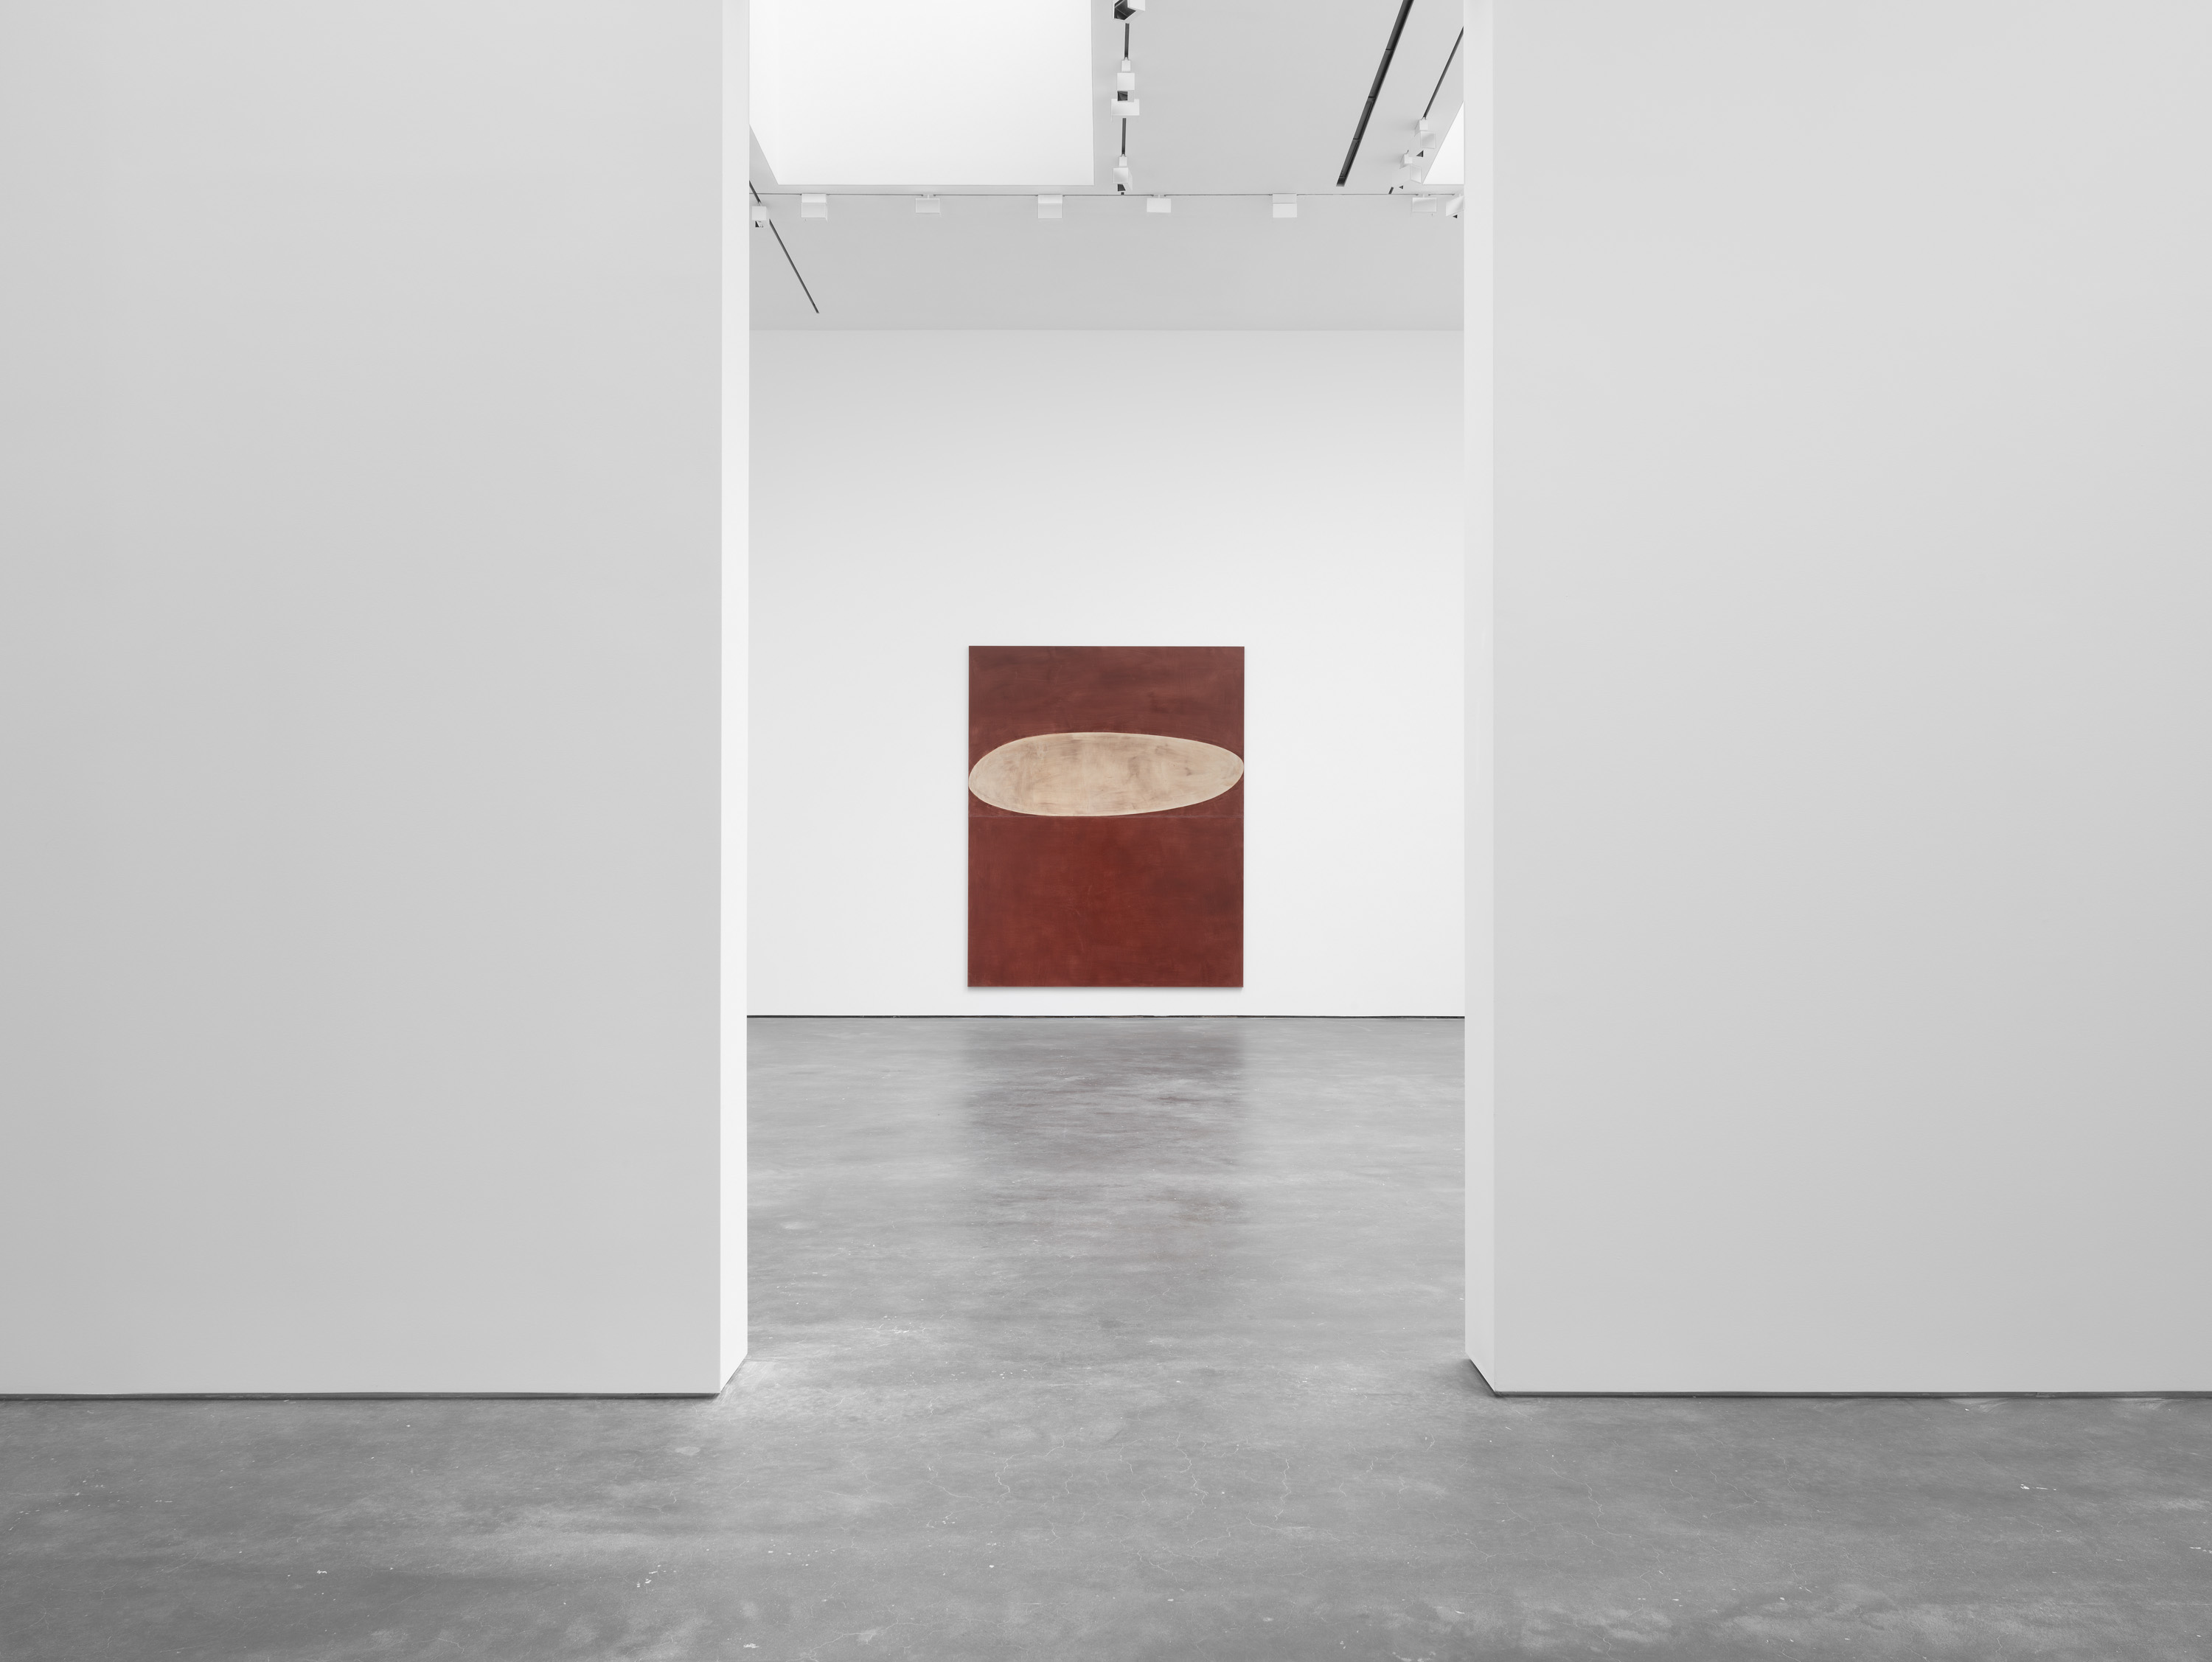 Installation view 2, Suzan Frecon: oil paintings, David Zwirner, New York, 2020 Courtesy David Zwirner